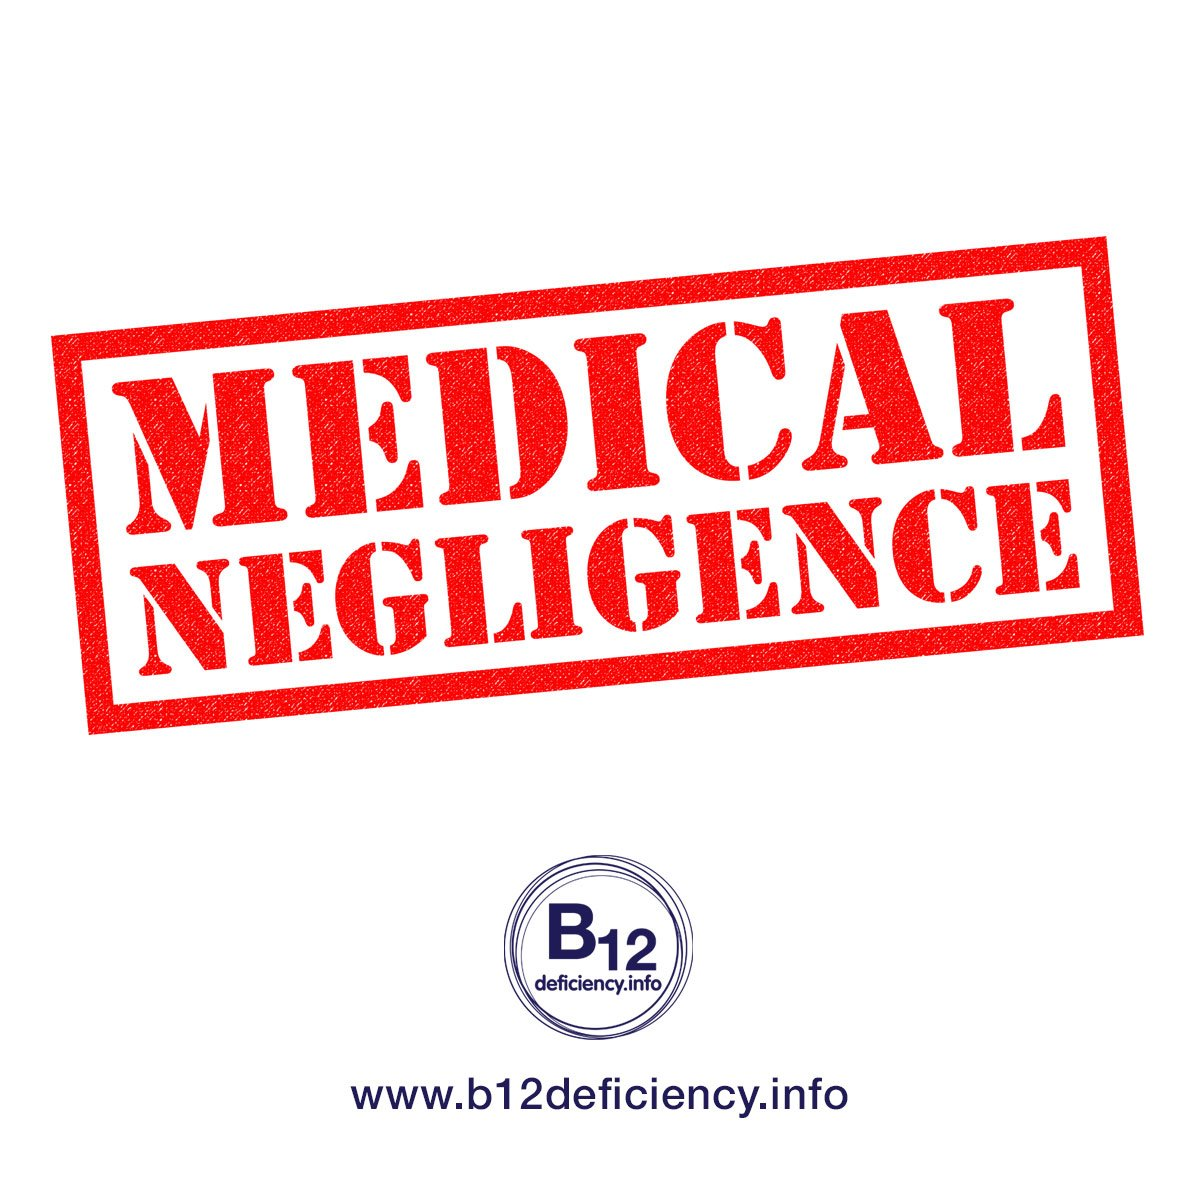 An obvious history of neglect – please help us to buy injectible B12 OTC, many doctors cannot or will not help us!